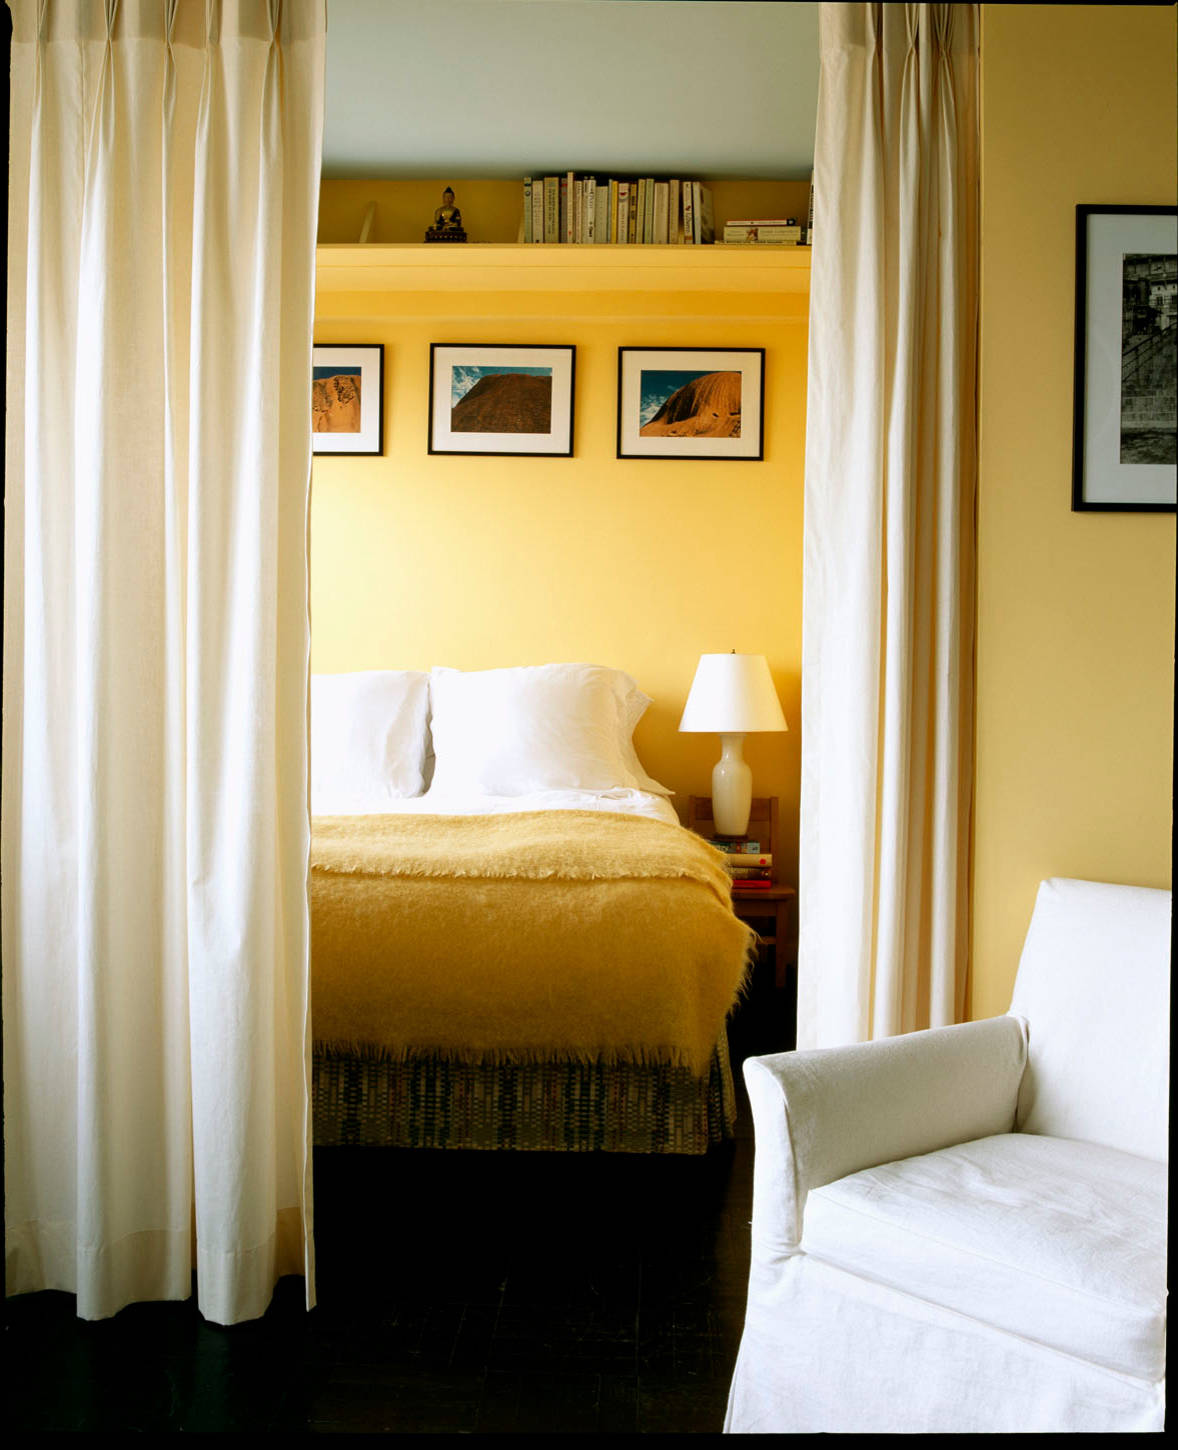 75 Beautiful Bedroom With Yellow Walls Pictures Ideas November 2020 Houzz